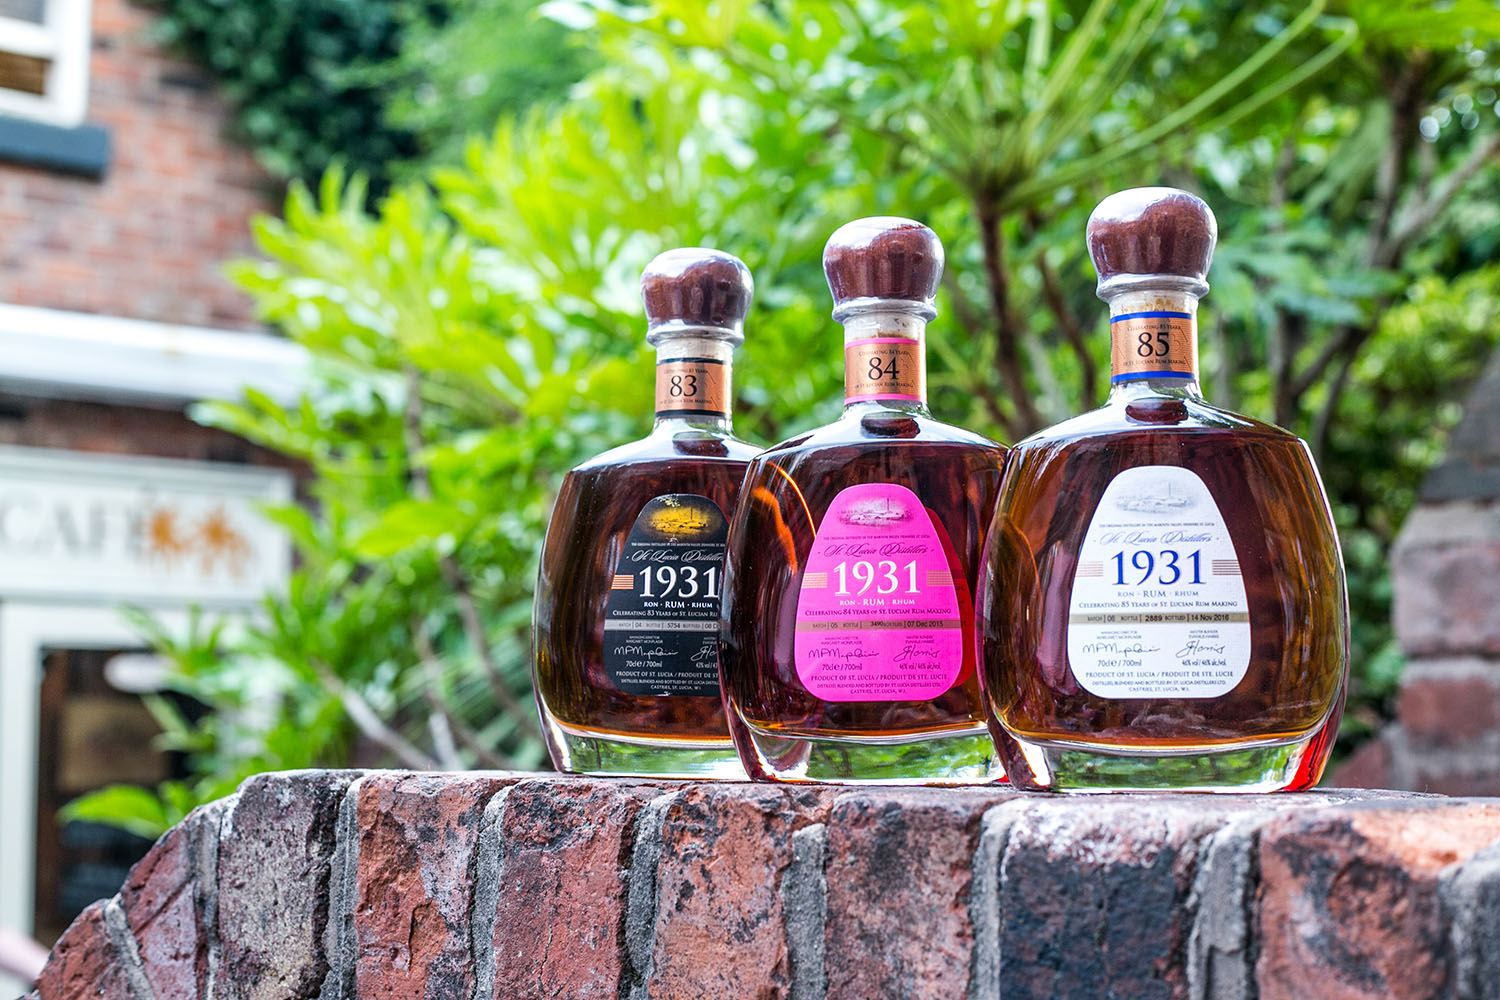 MARIGOT BAY BAR & CAFÉ LAUNCHES RUM INVENTORY ON NATIONAL RUM DAY